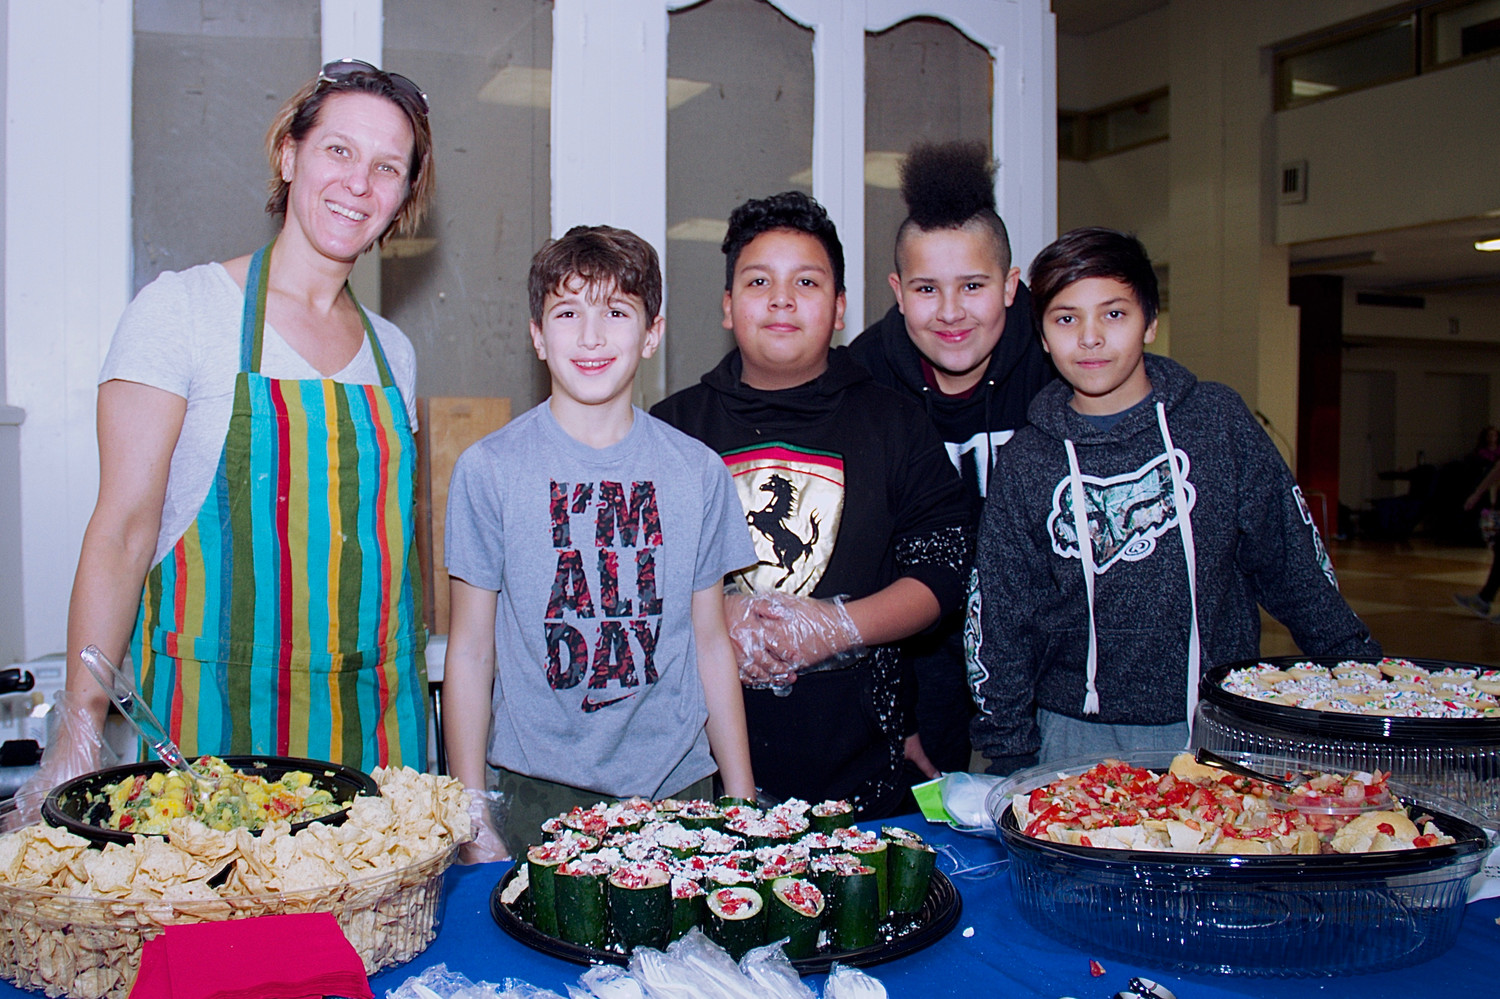 Youth Program Coordinator Jacki Yonick, right, 6- and 7-graders Pandelis Tursi, Luis Cruz, Rodni Leftwich, and Brandon Curcio, show off the healthy snacks they had made for the student showcase.